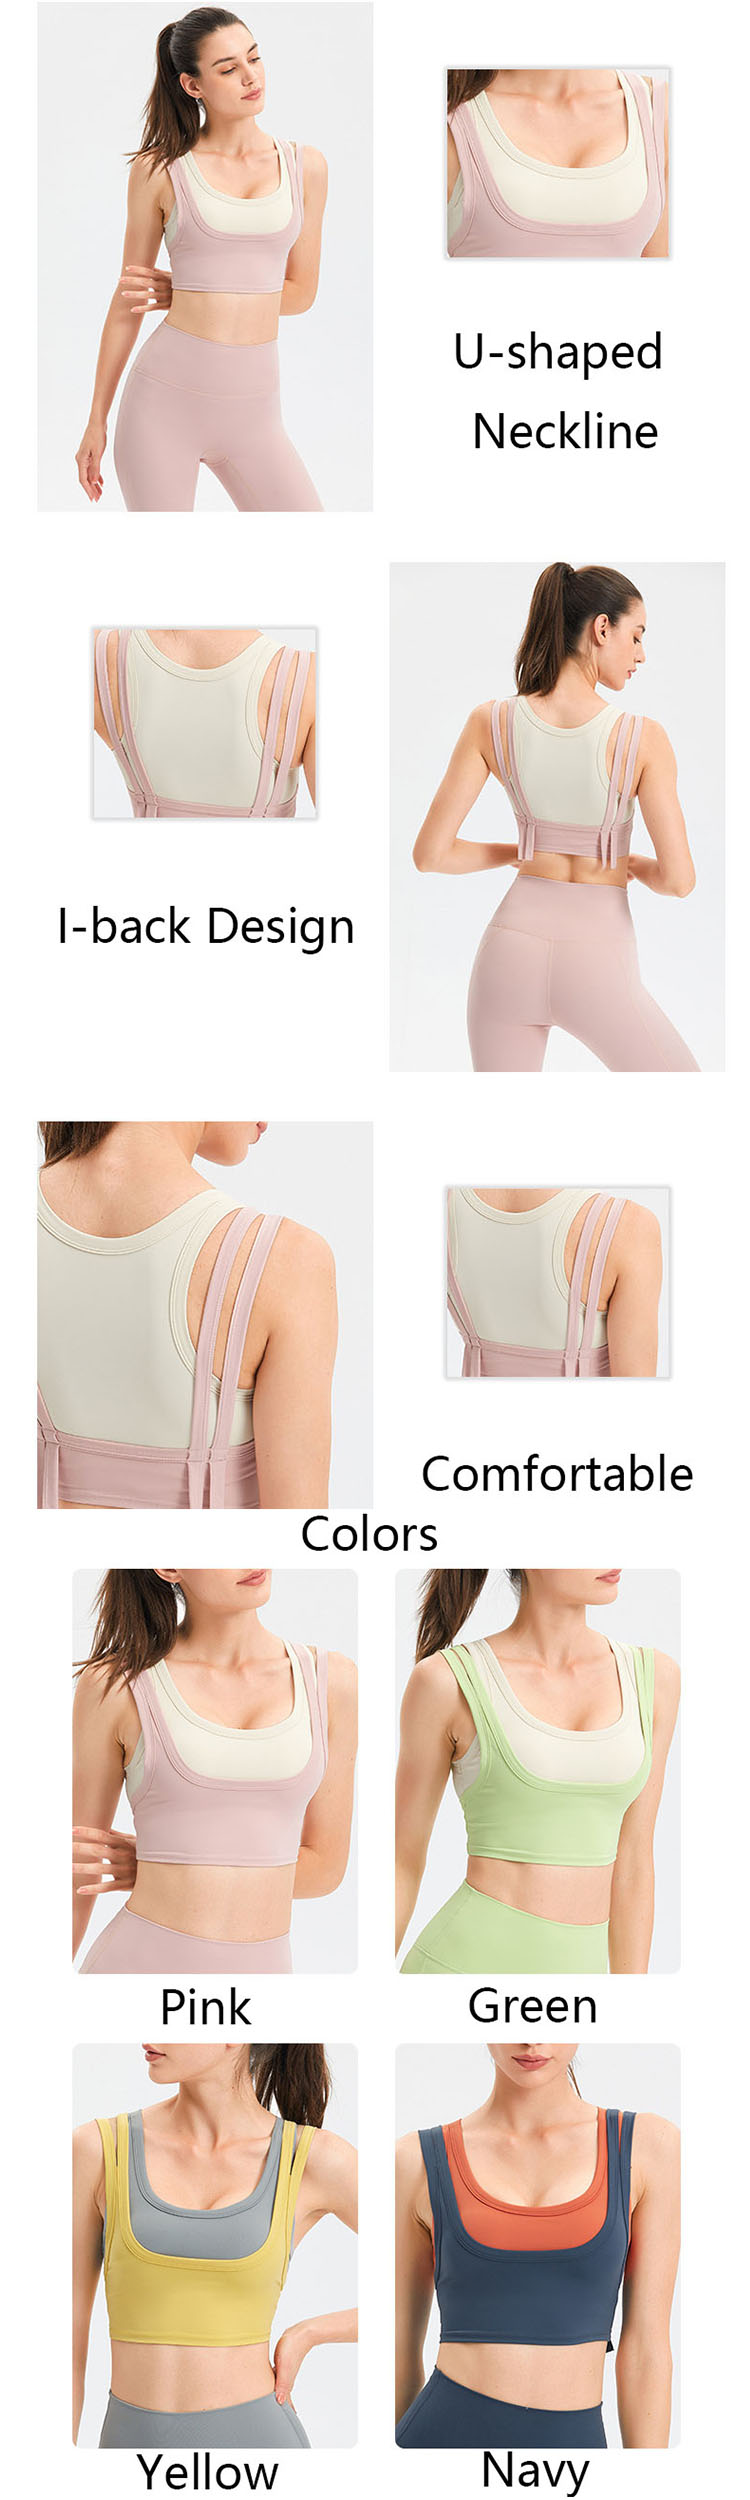 The double-layer shoulder strap design makes the womens running shirts more refined while increasing the sense of lifting